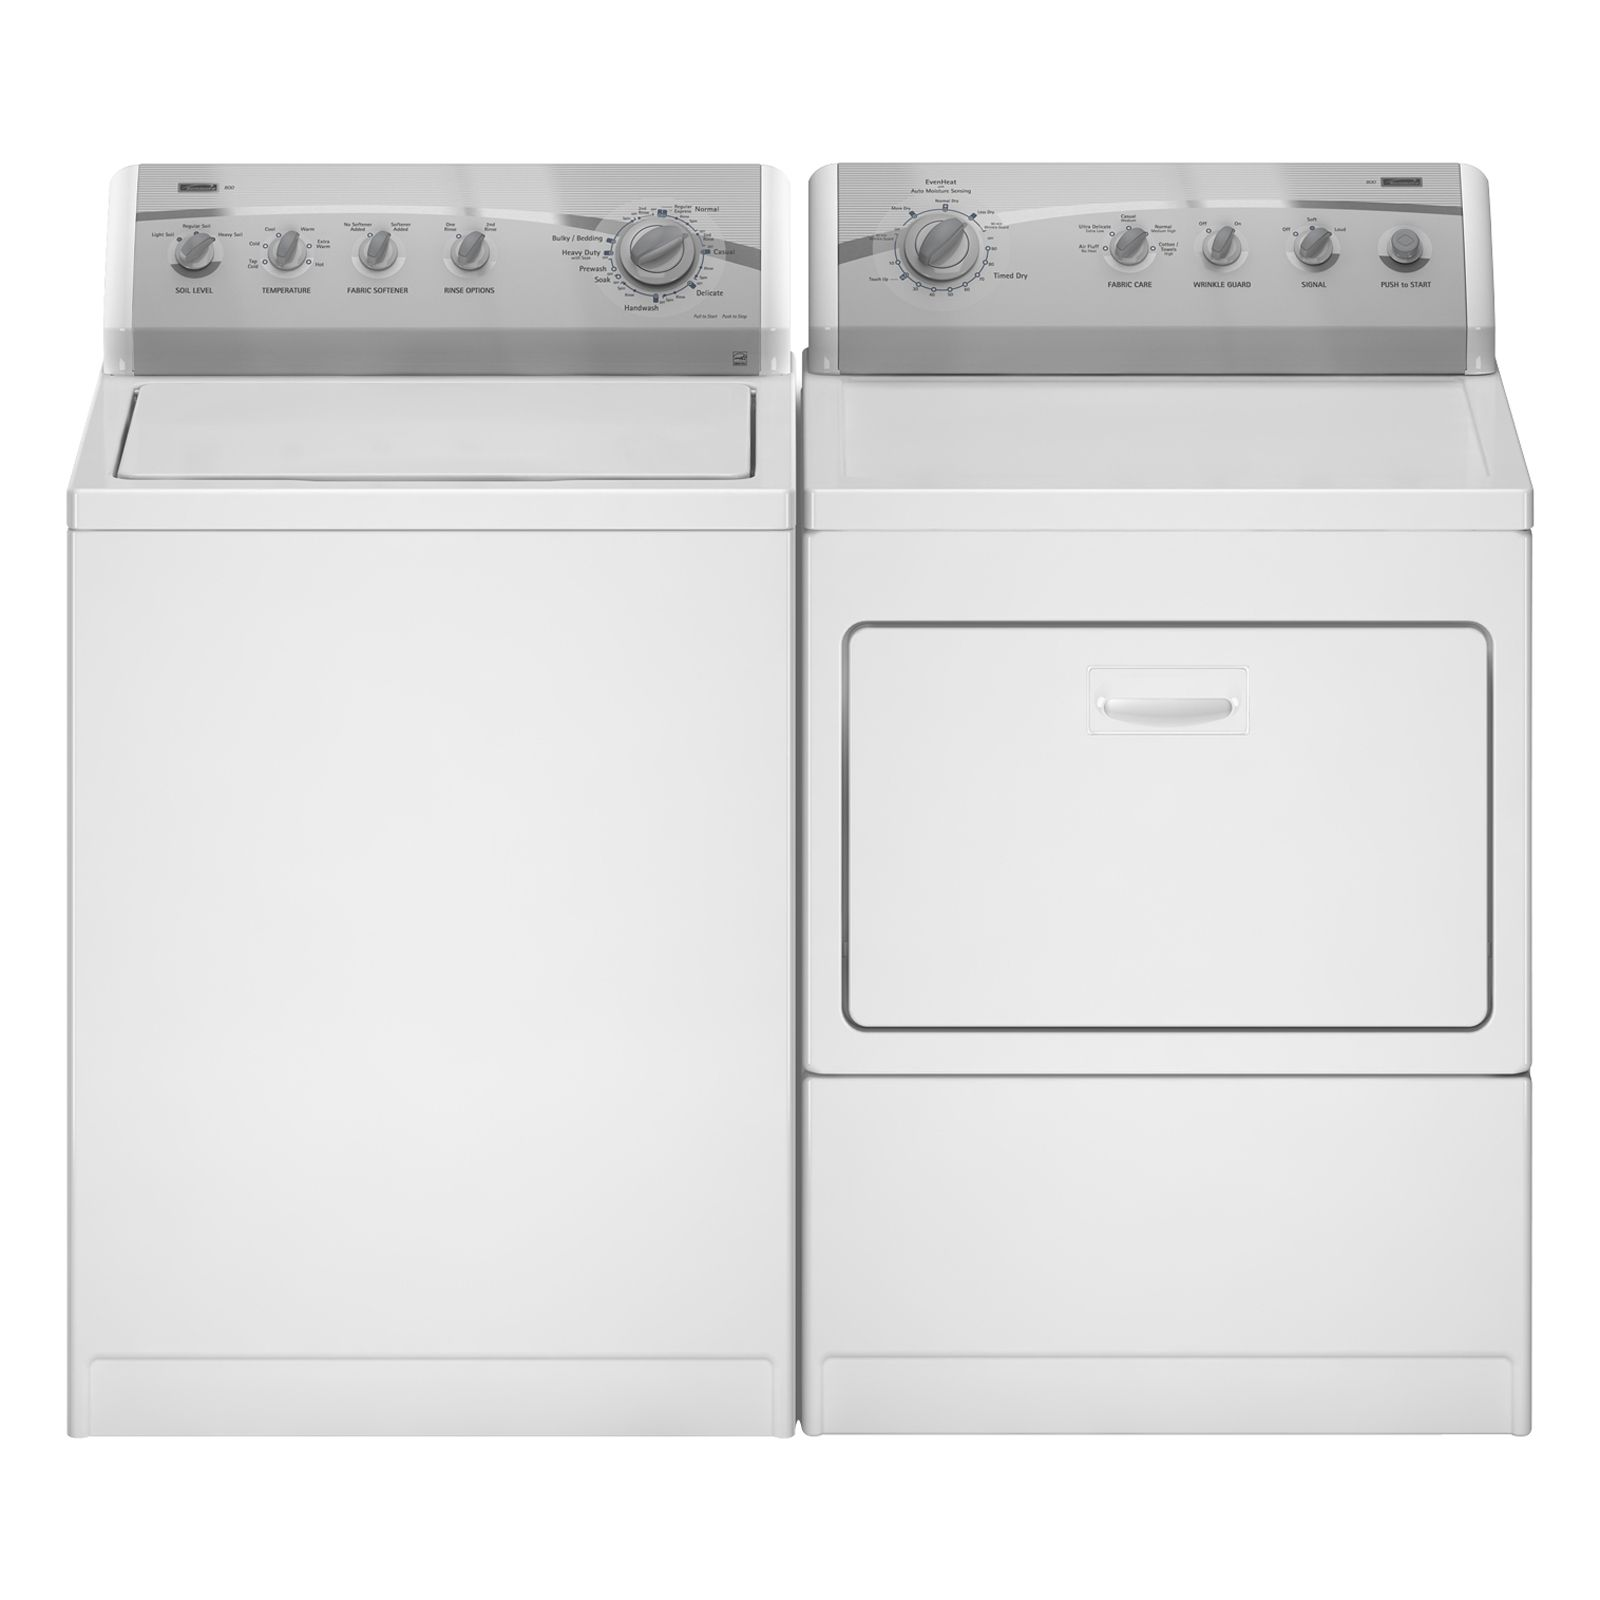 Kenmore 800 7.5 cu. ft. Gas Dryer - 7982